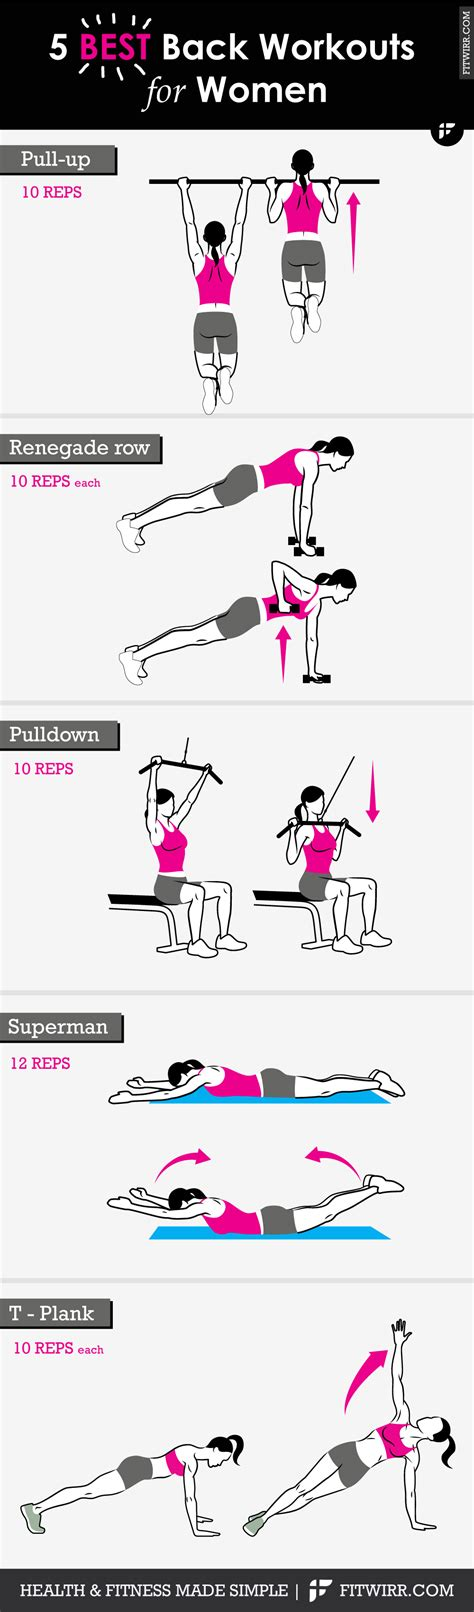 best workout for women from 5 best back workouts for women to get sleek and toned back